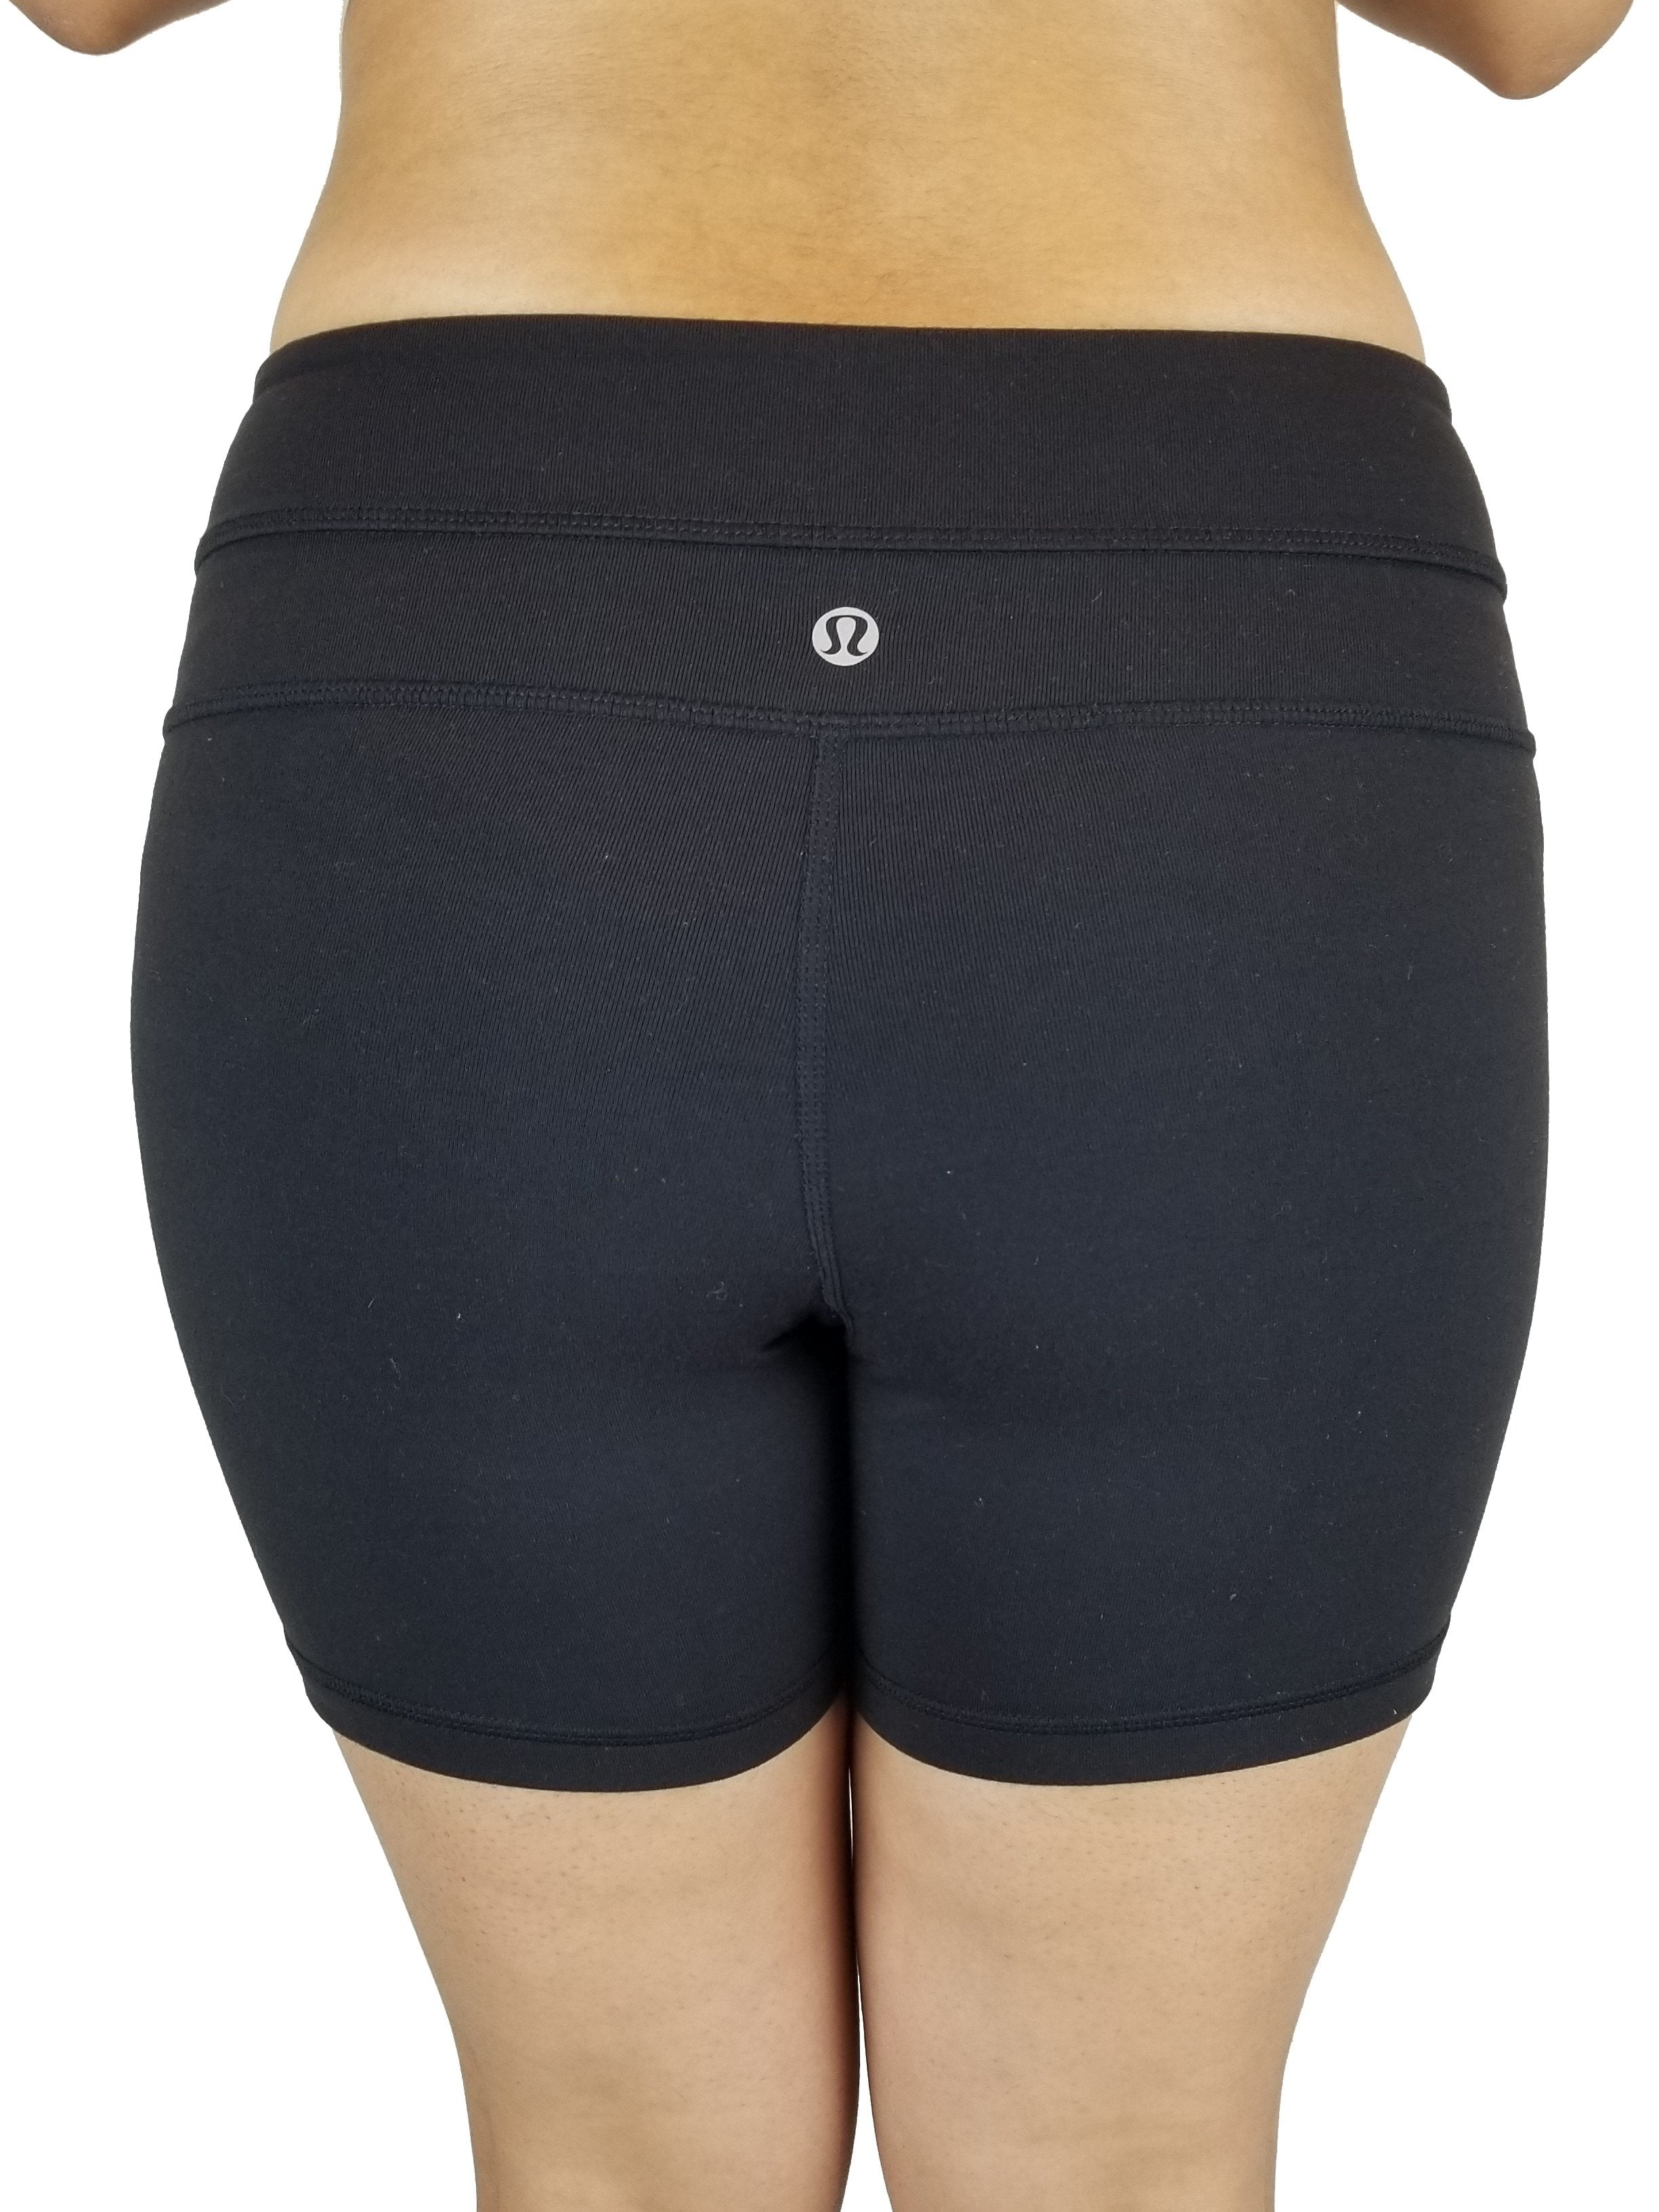 "Lululemon Black Align Yoga Shorts 4"", Vancouver street wear/Yoga pants. Lululemon size 6. https://info.lululemon.com/help/size-chart, Black, Nylon, Lycra, and Spandex, Yoga, yoga pants, athletic wear, work out, comfortable pants, fitness, fit"